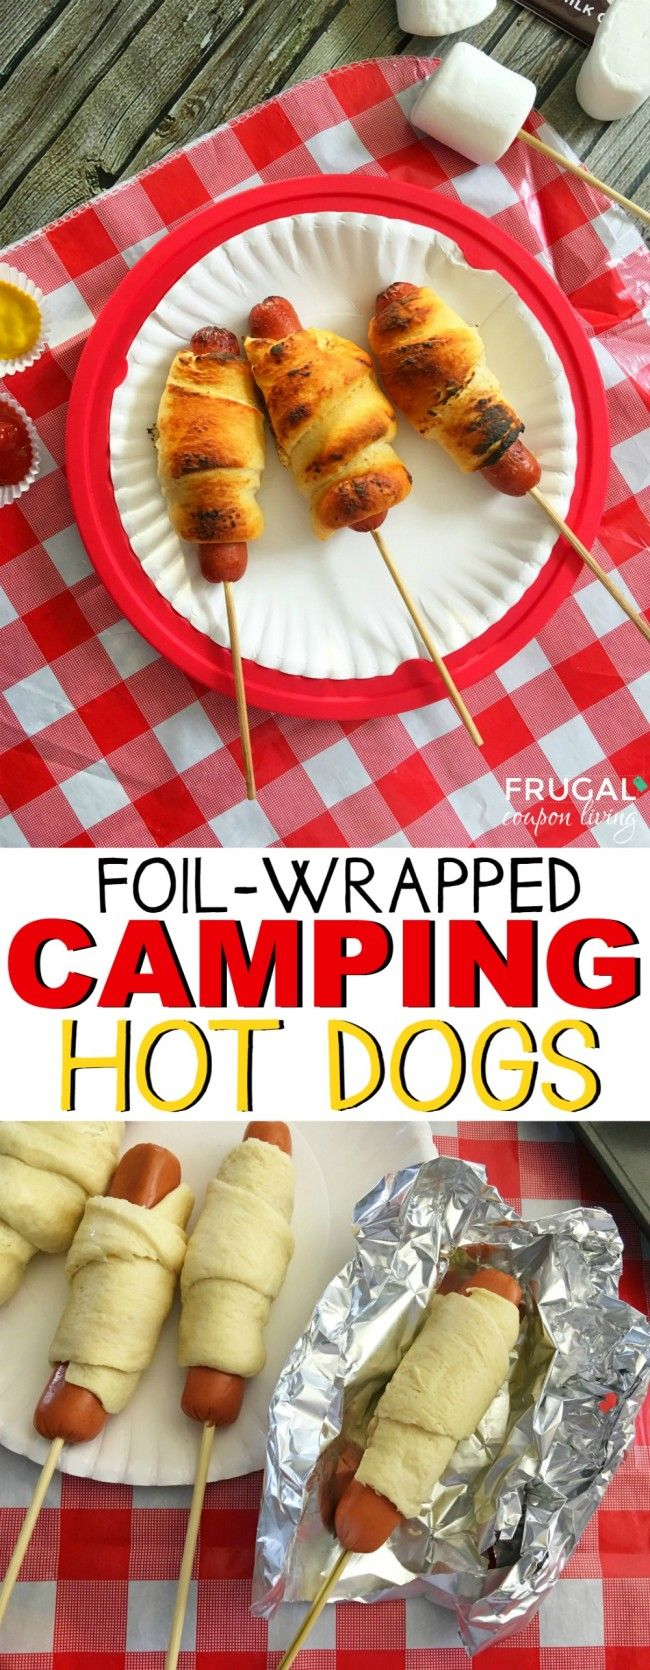 Foil wrapped hot dog recipe and The 11 Best Camping Recipes (Camping Hacks Food)